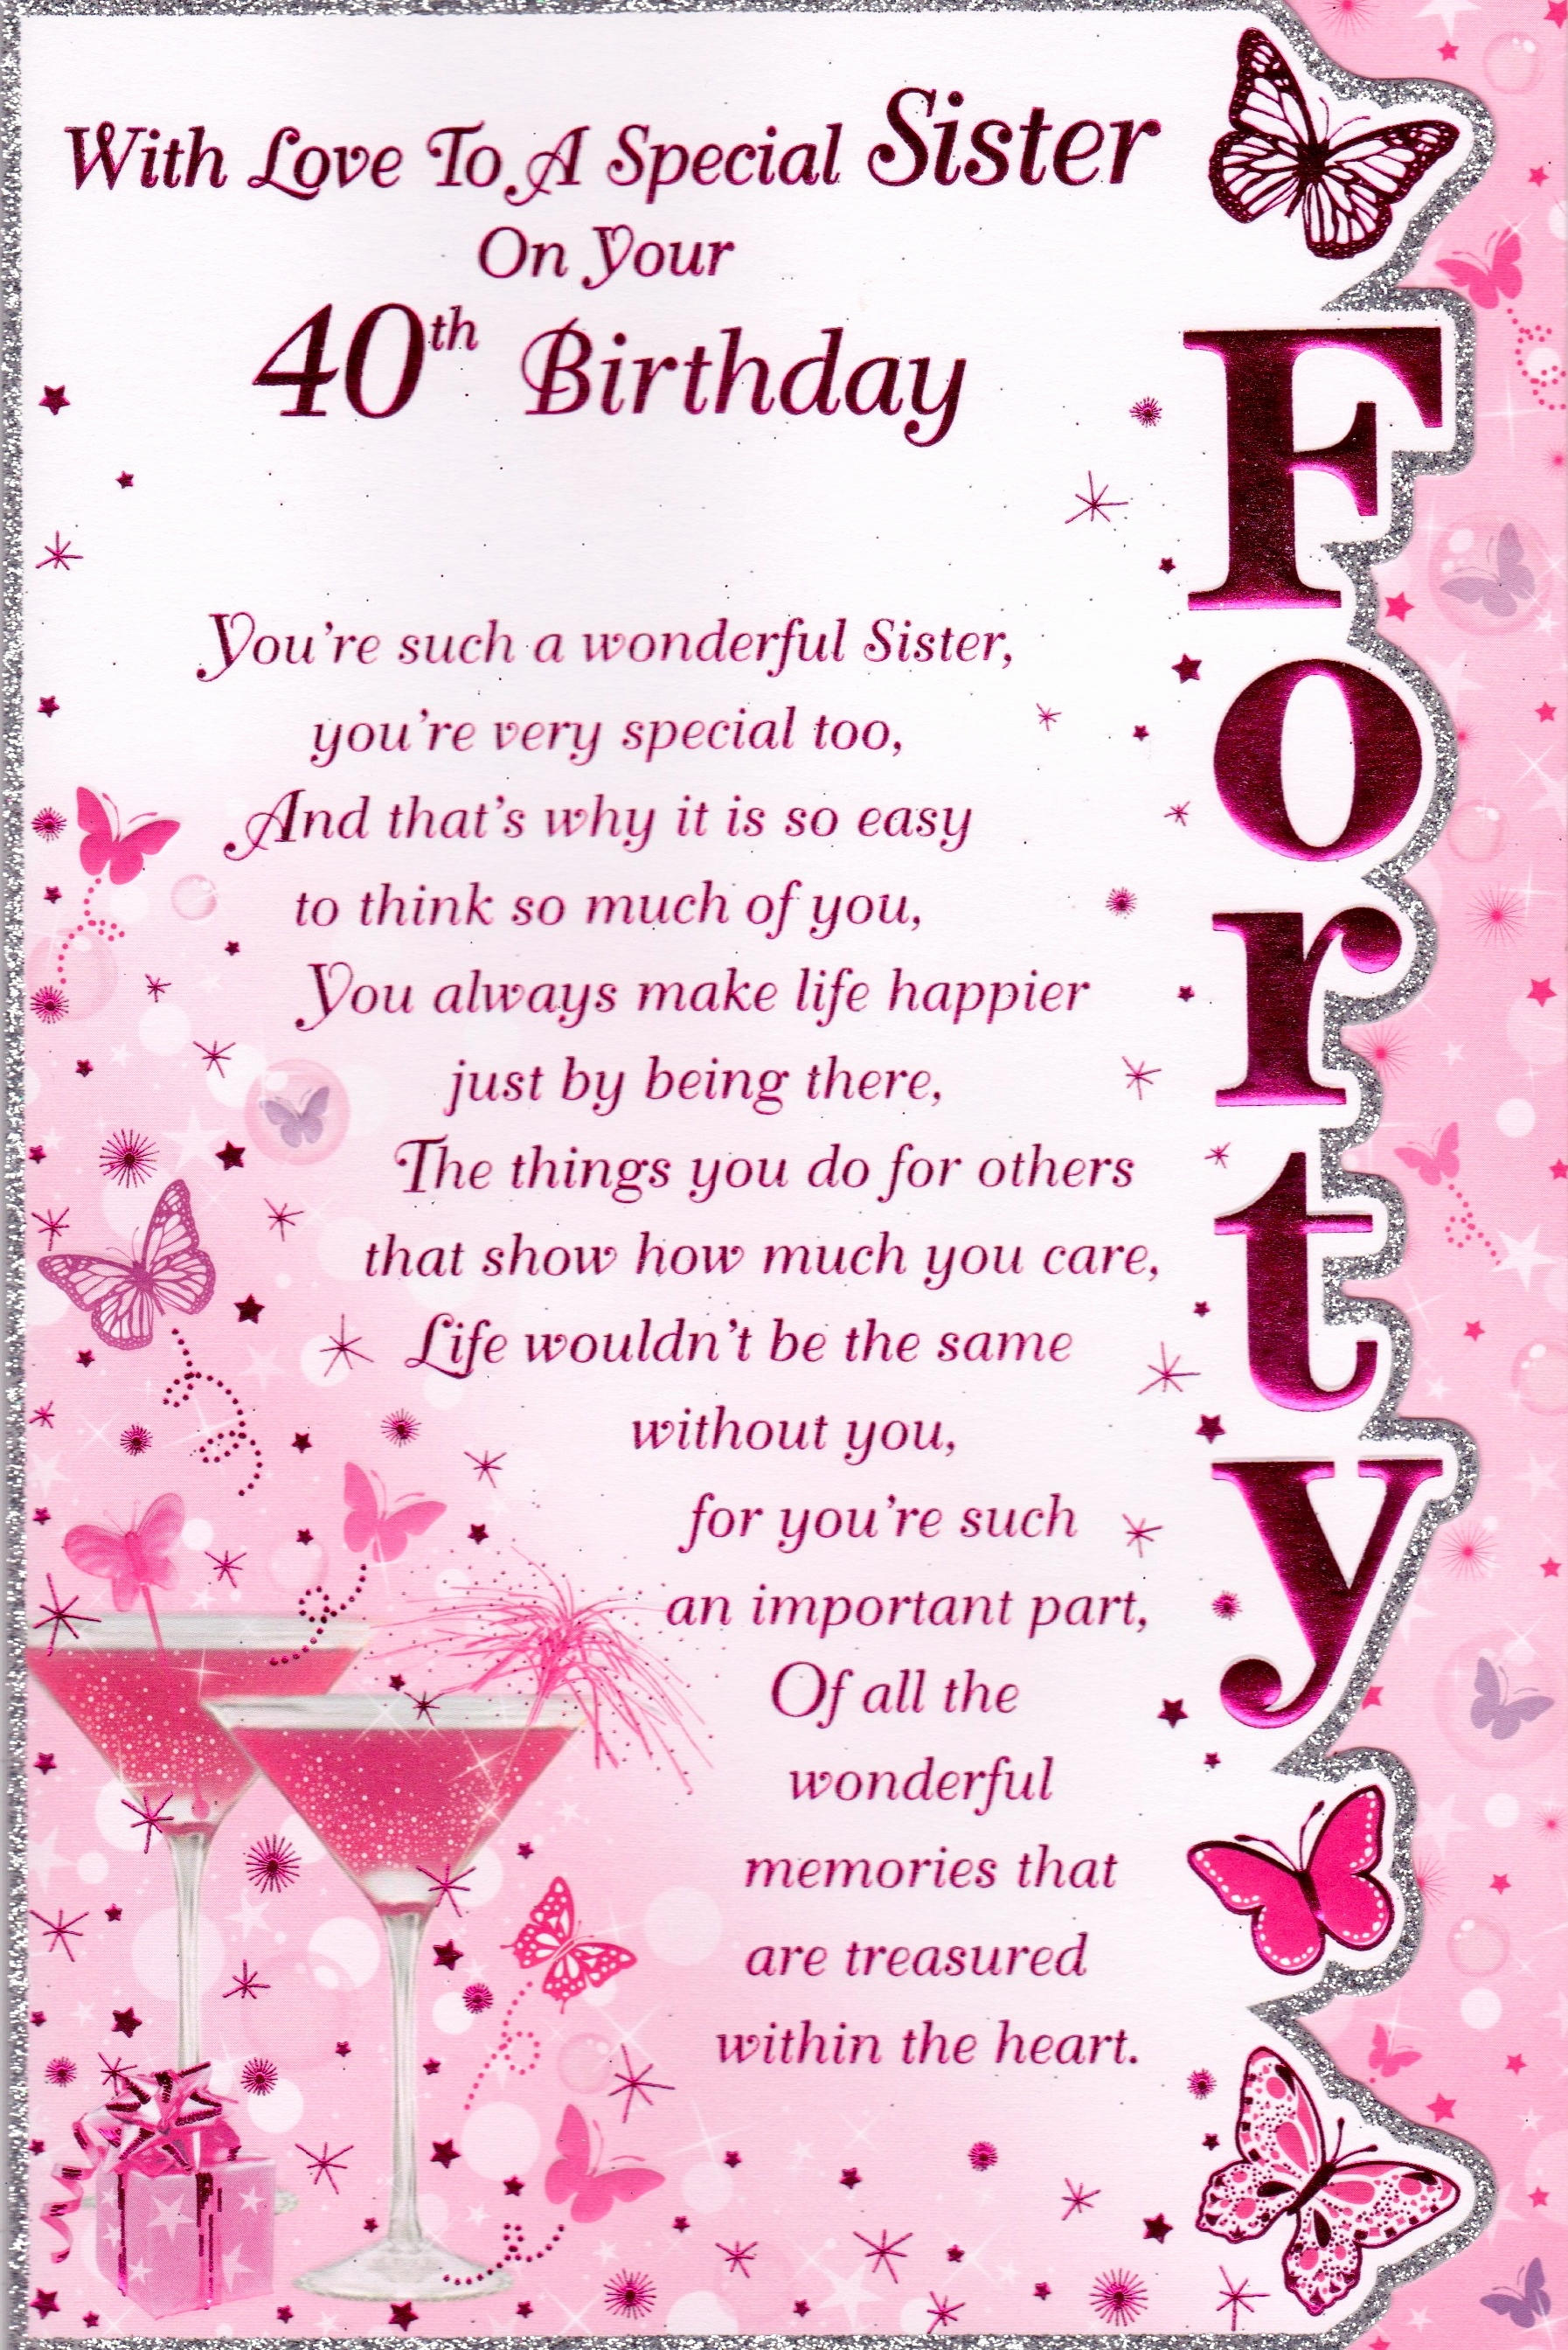 40th birthday message for a special friend ; birthday-card-for-special-friend-message-best-of-image-result-for-sisters-40th-birthday-funny-pinterest-of-birthday-card-for-special-friend-message